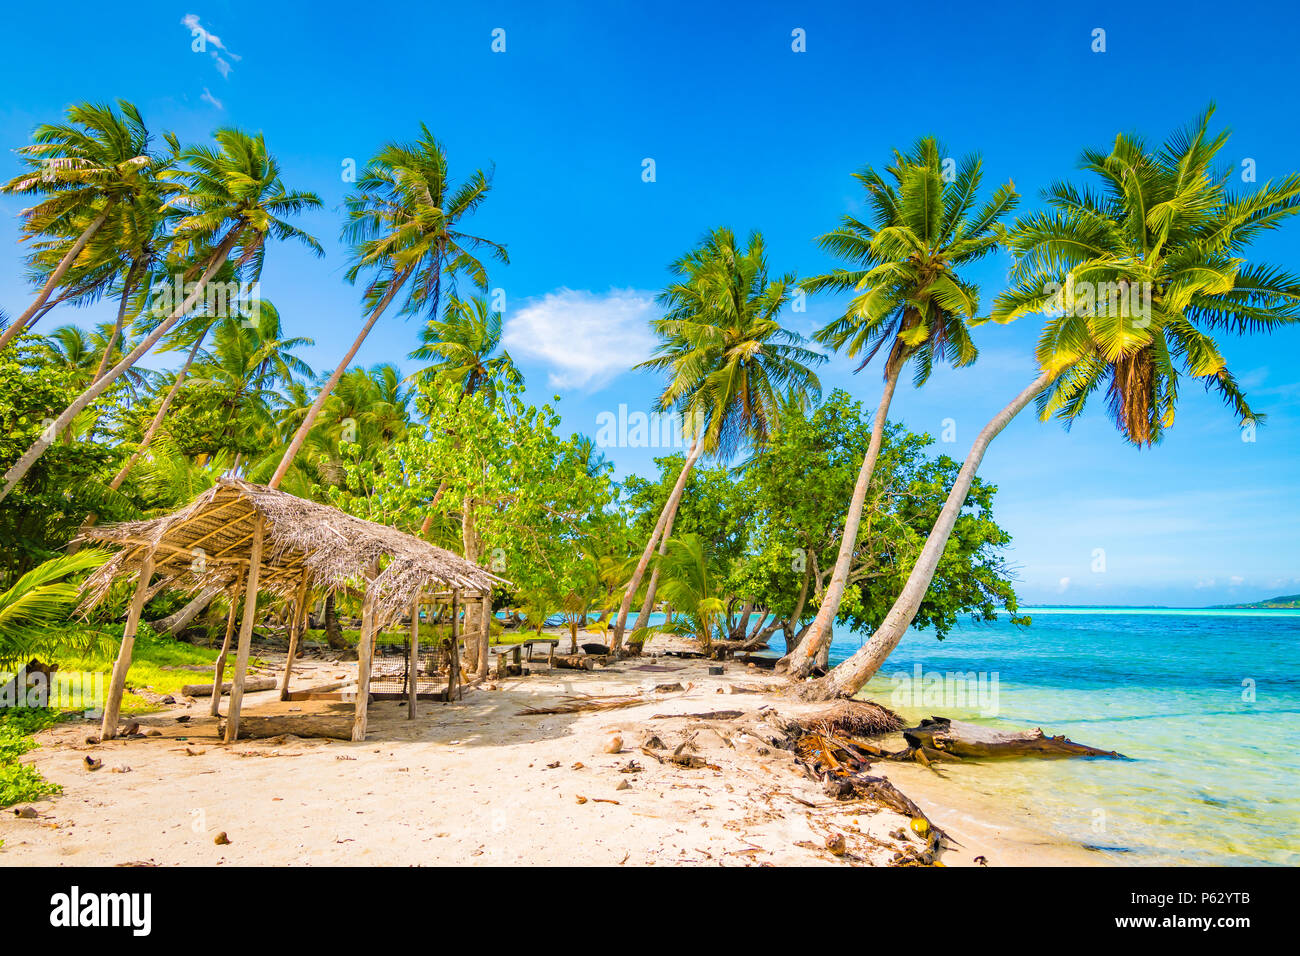 Palm trees and staw hut on tropical island. Tahaa, French Polynesia. Stock Photo